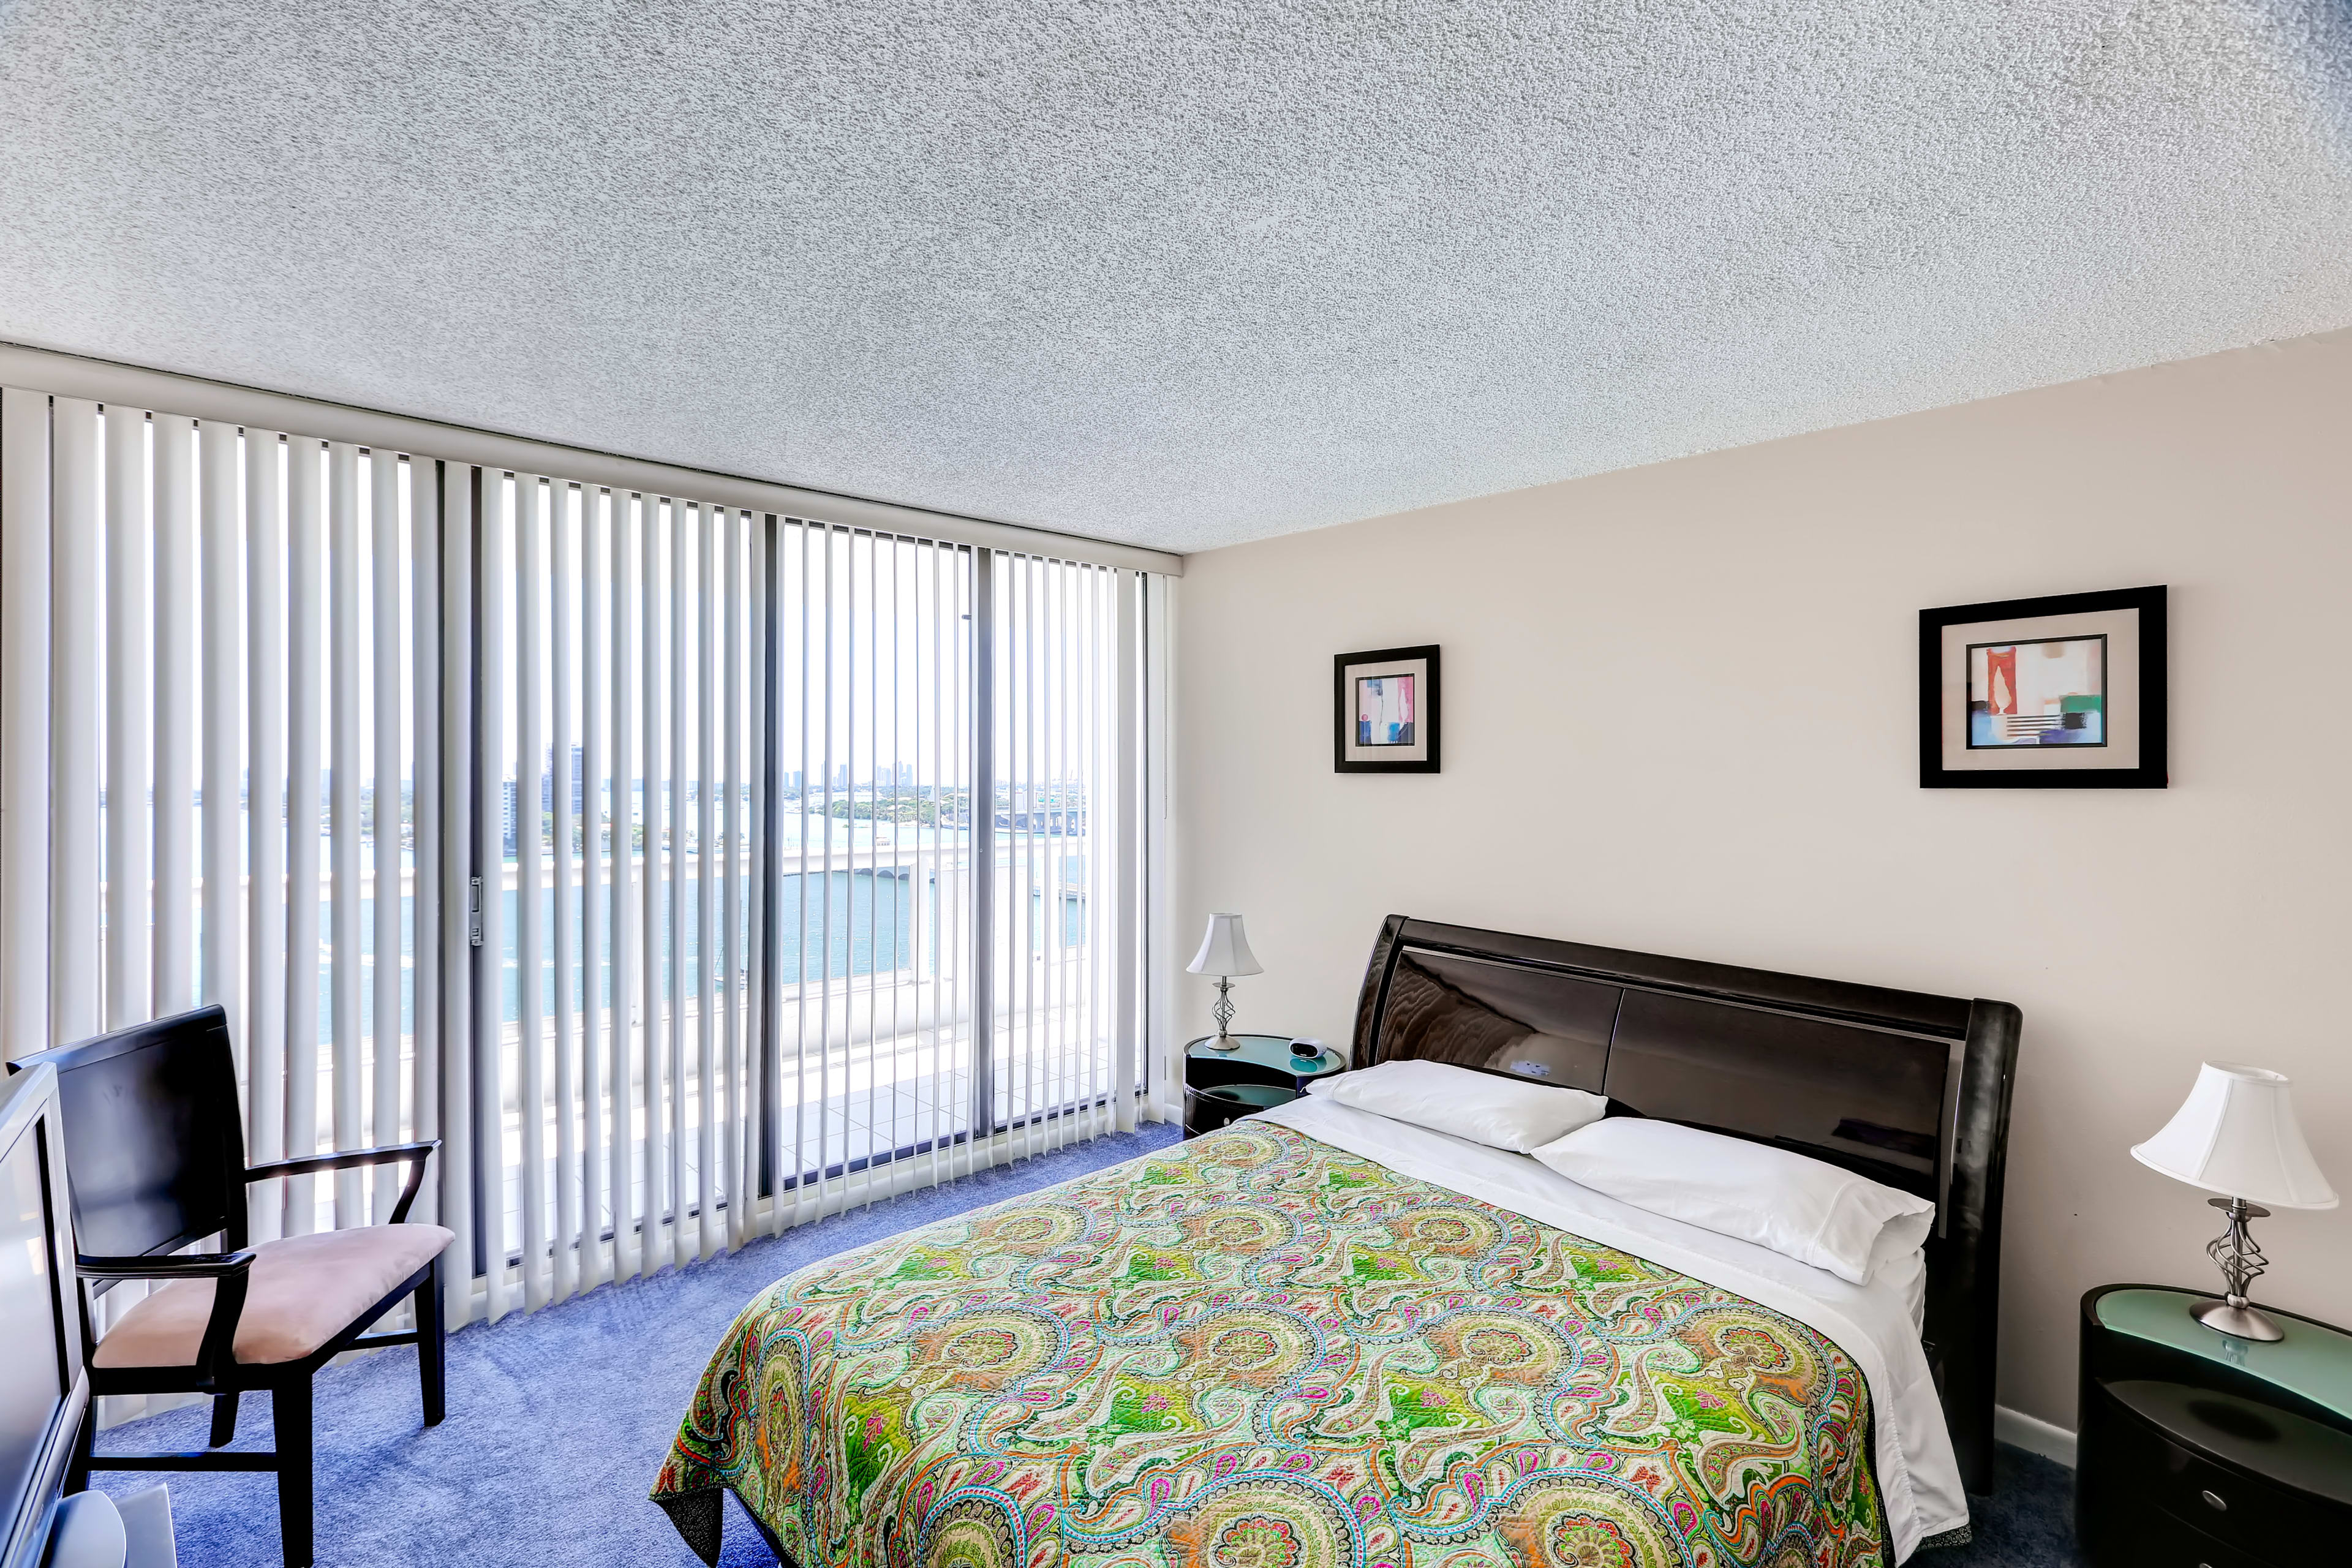 Settle into this restful bedroom!